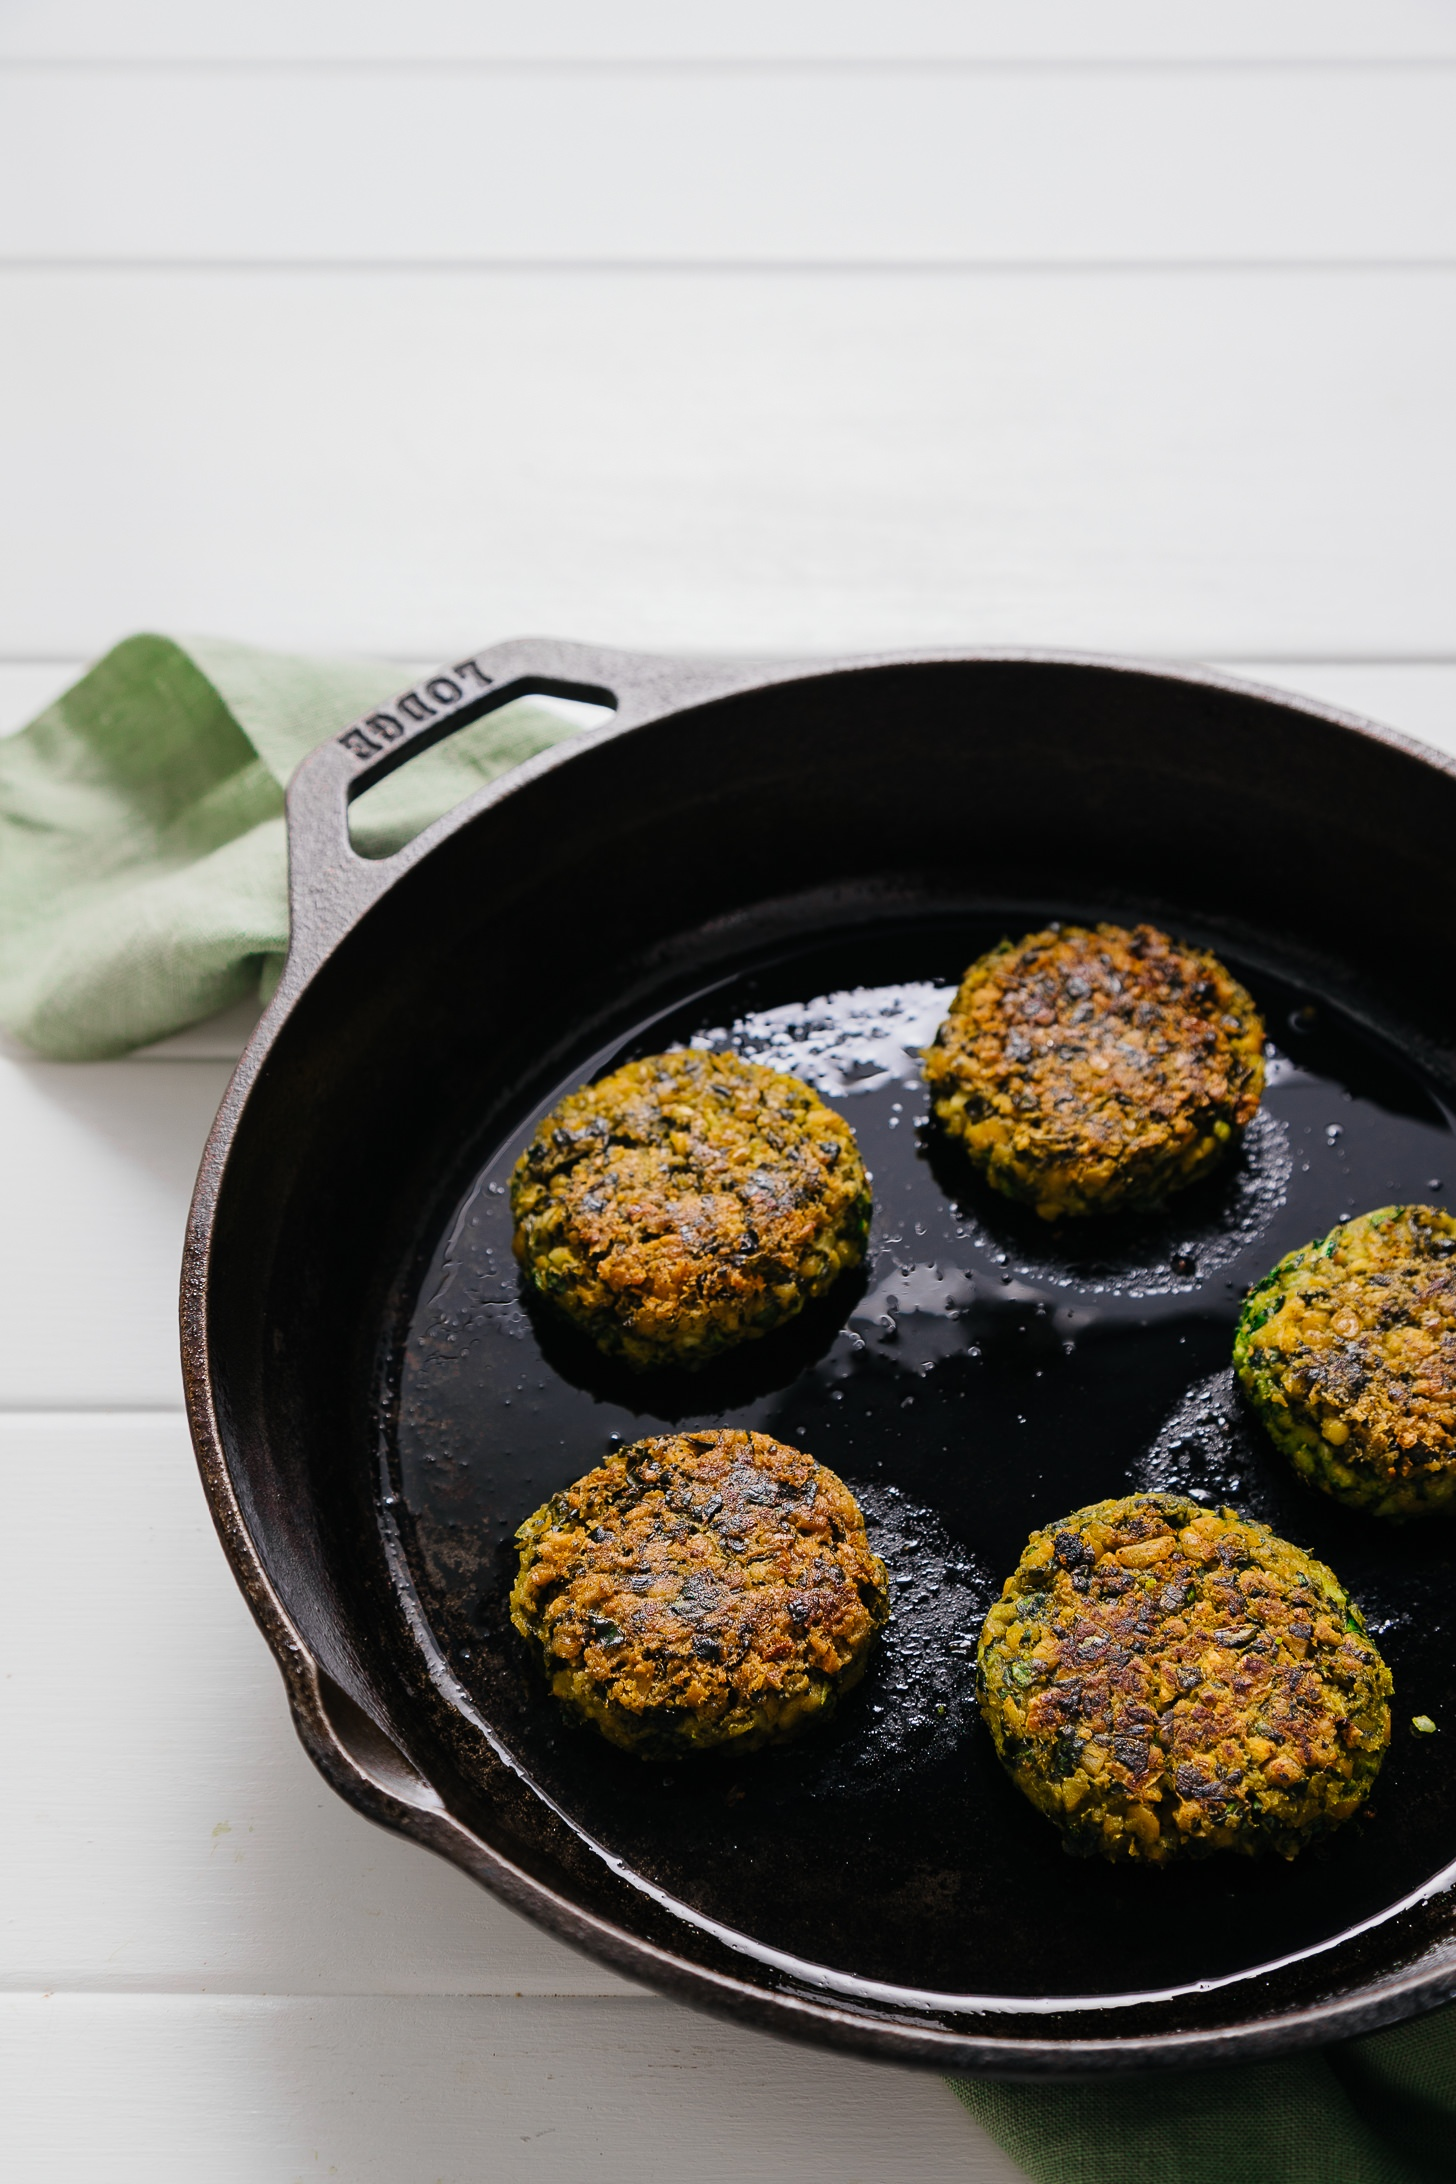 Healthy Kale Falafel cooking in a cast-iron skillet